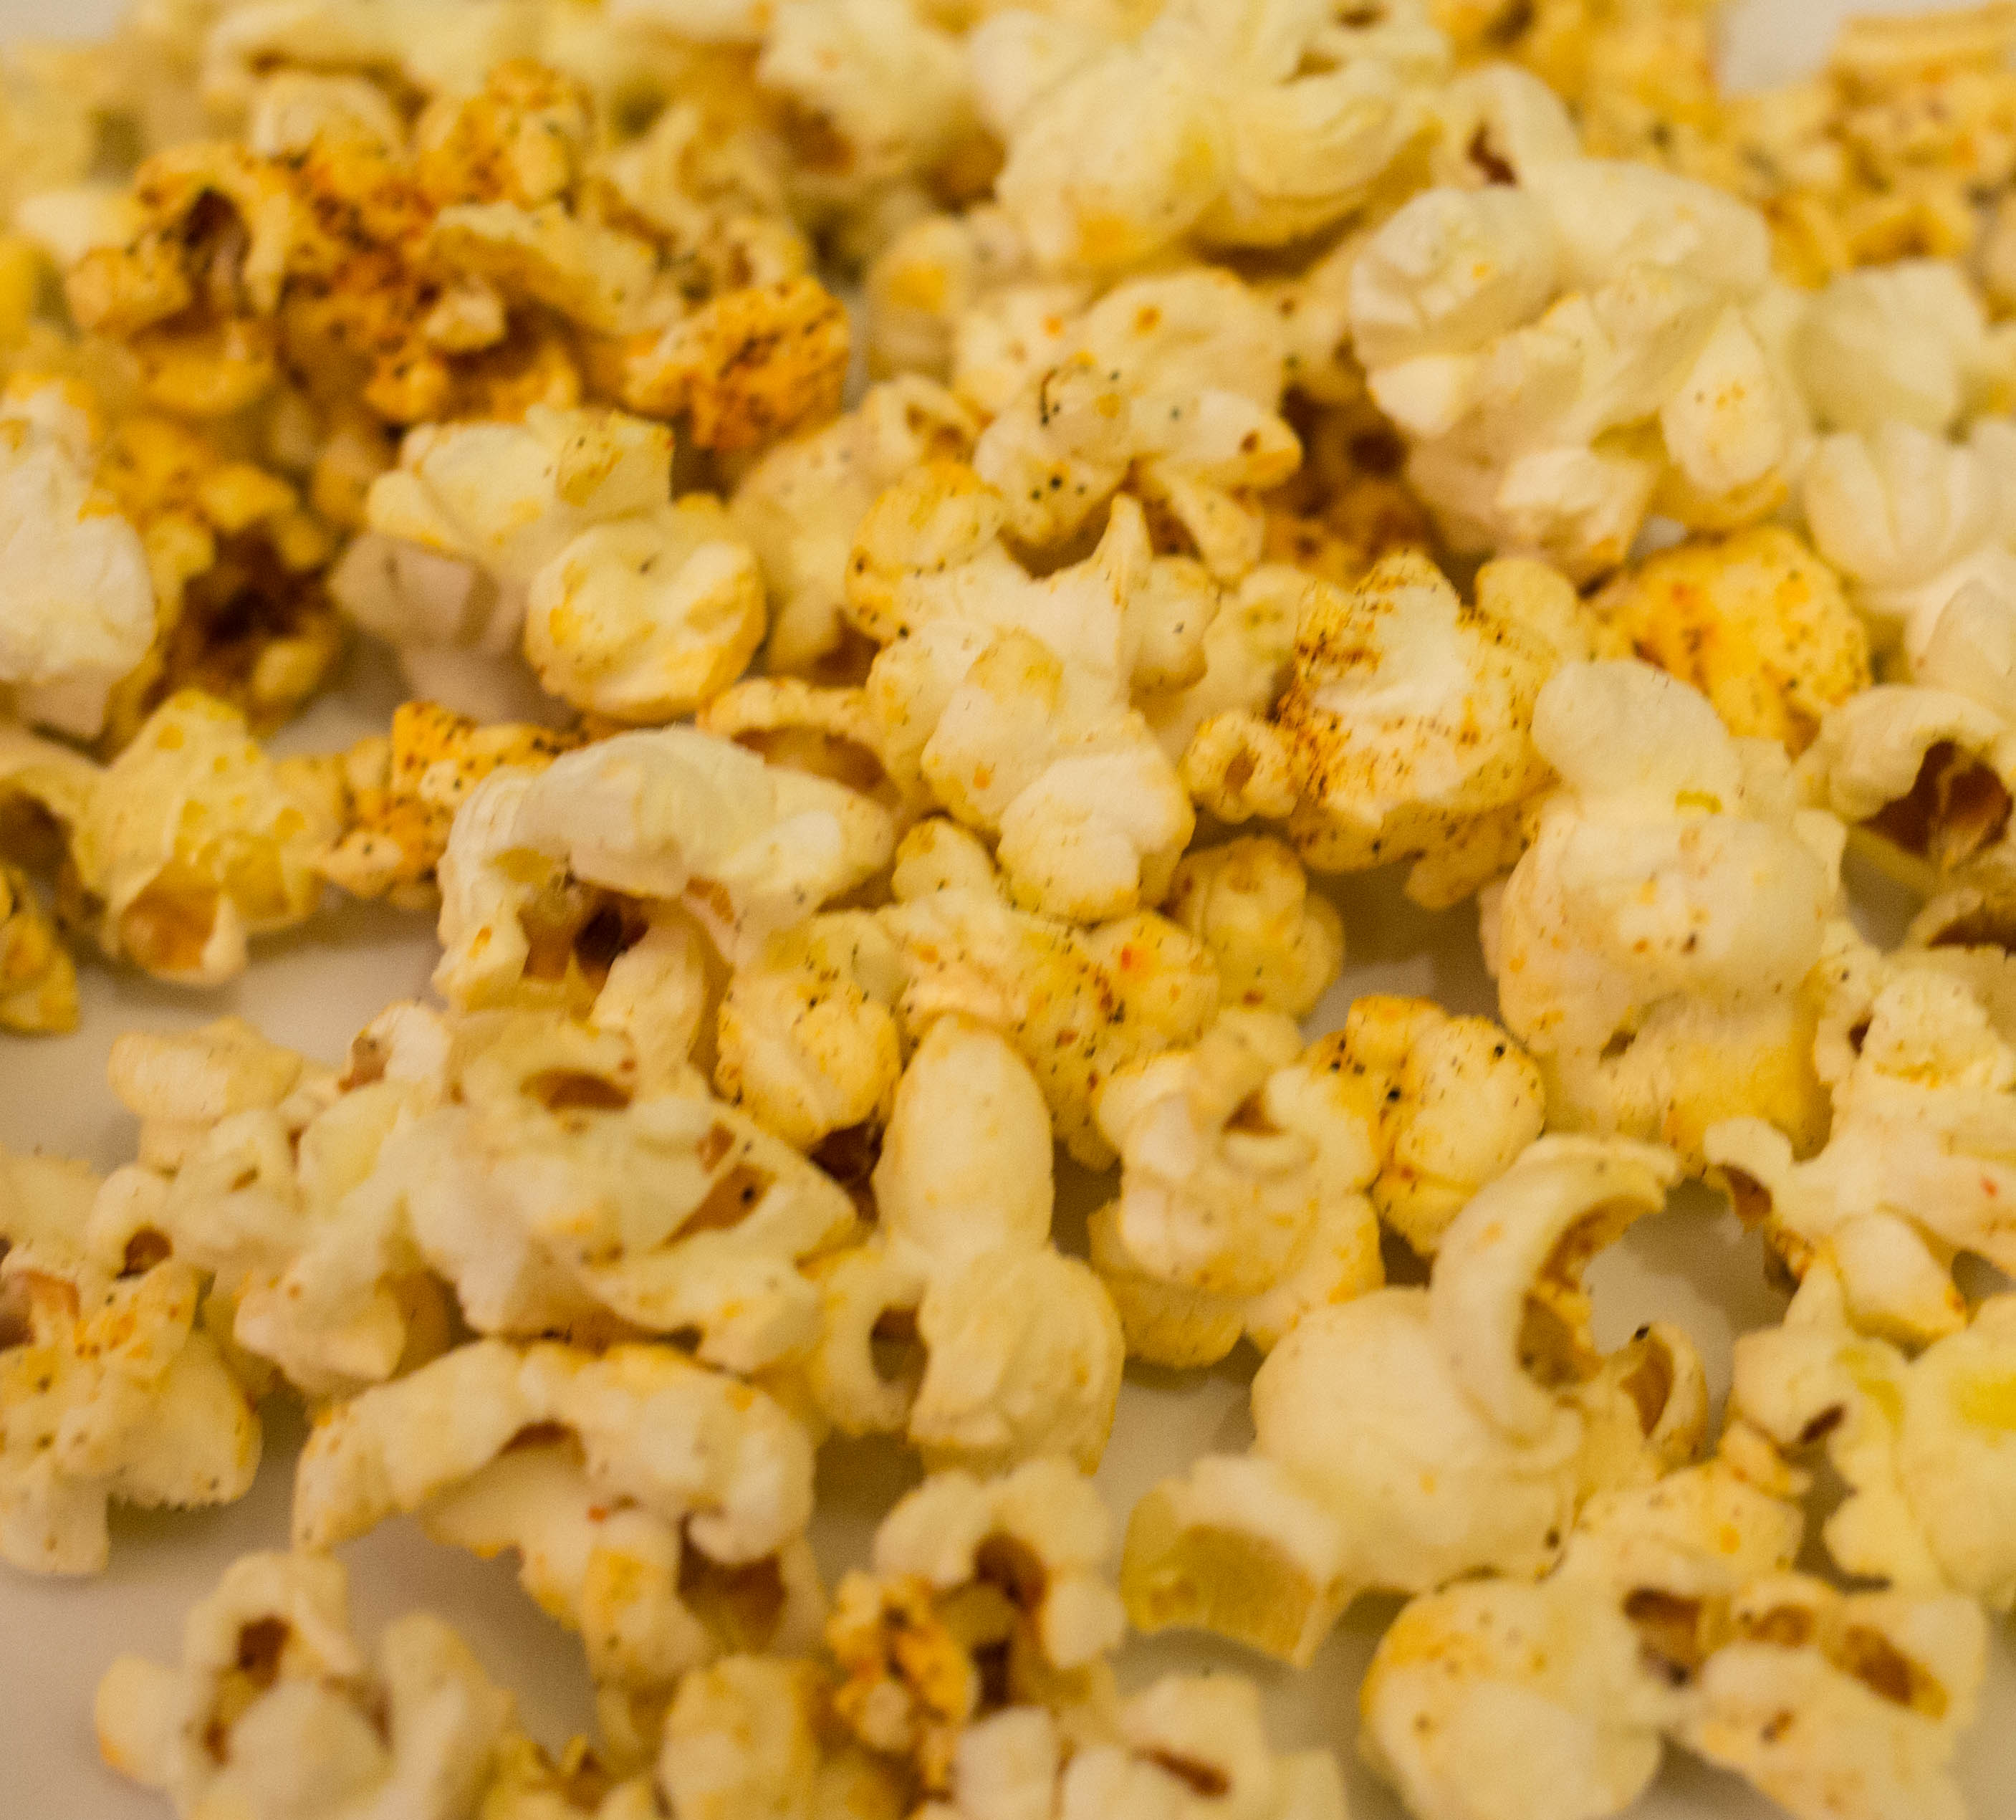 My Ceviche Spicy Popcorn